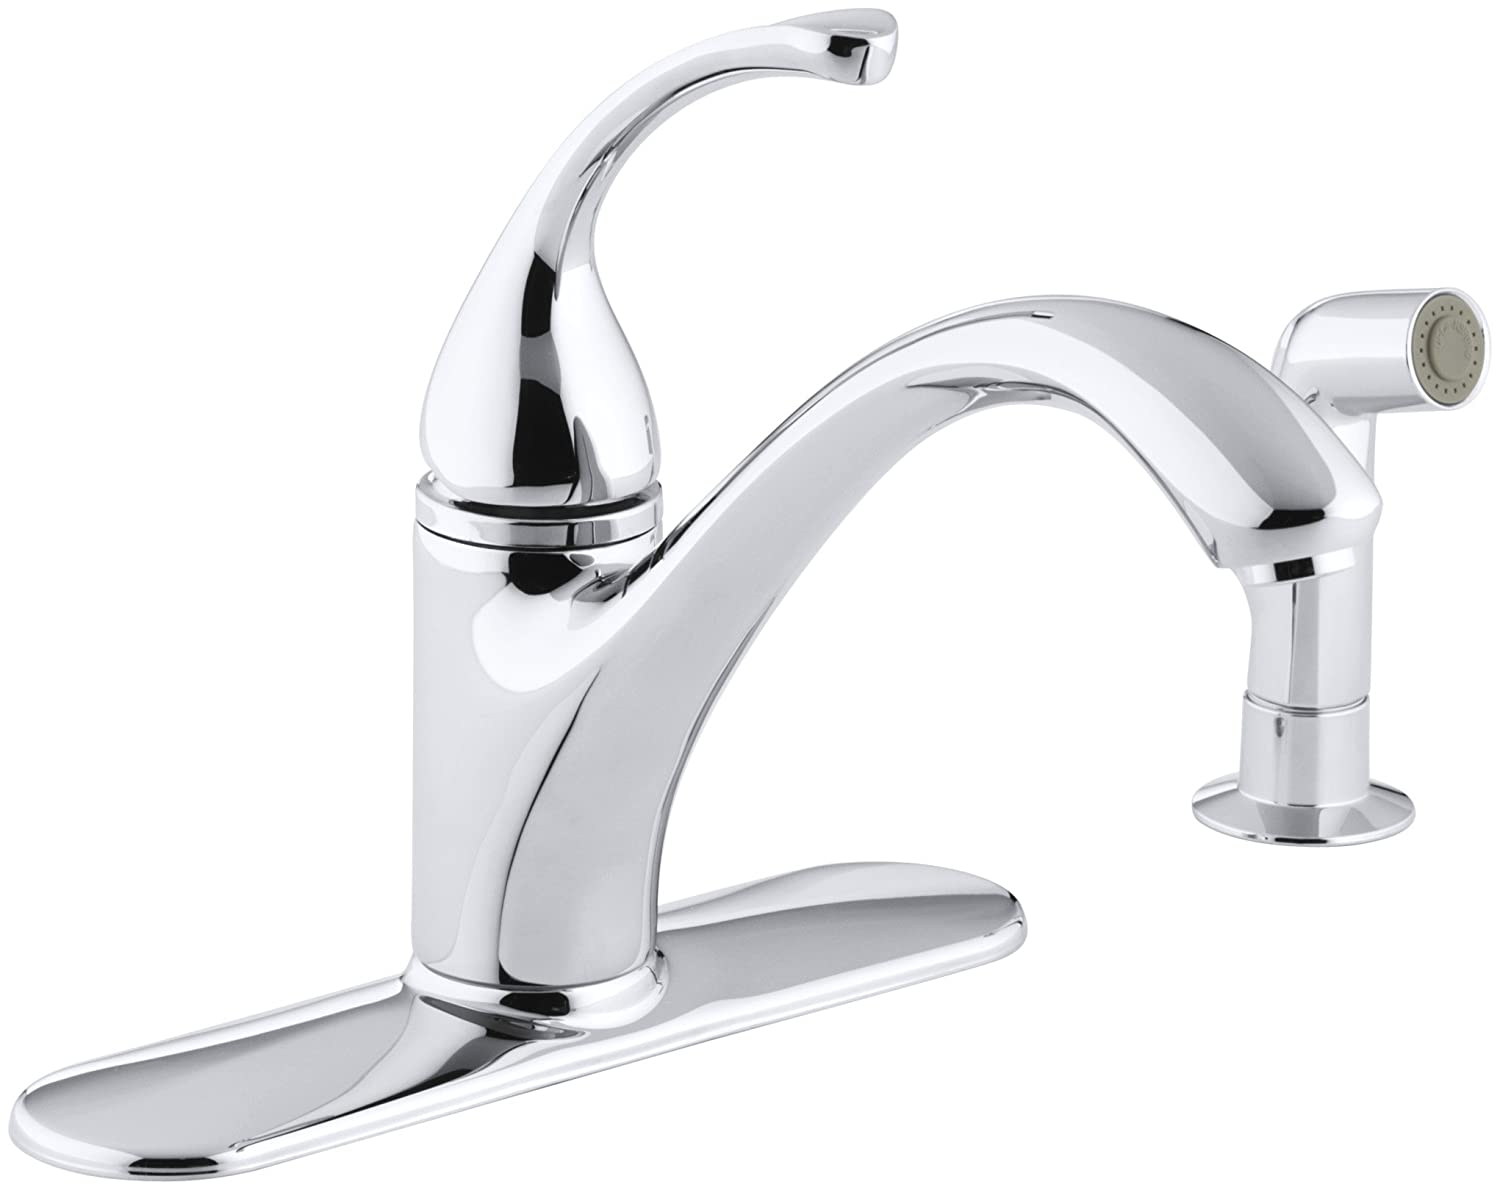 KOHLER K-10412-CP Fort R 4-Hole Sink 9-1 16 spout, Matching Finish sidespray Kitchen Faucet, Polished Chrome